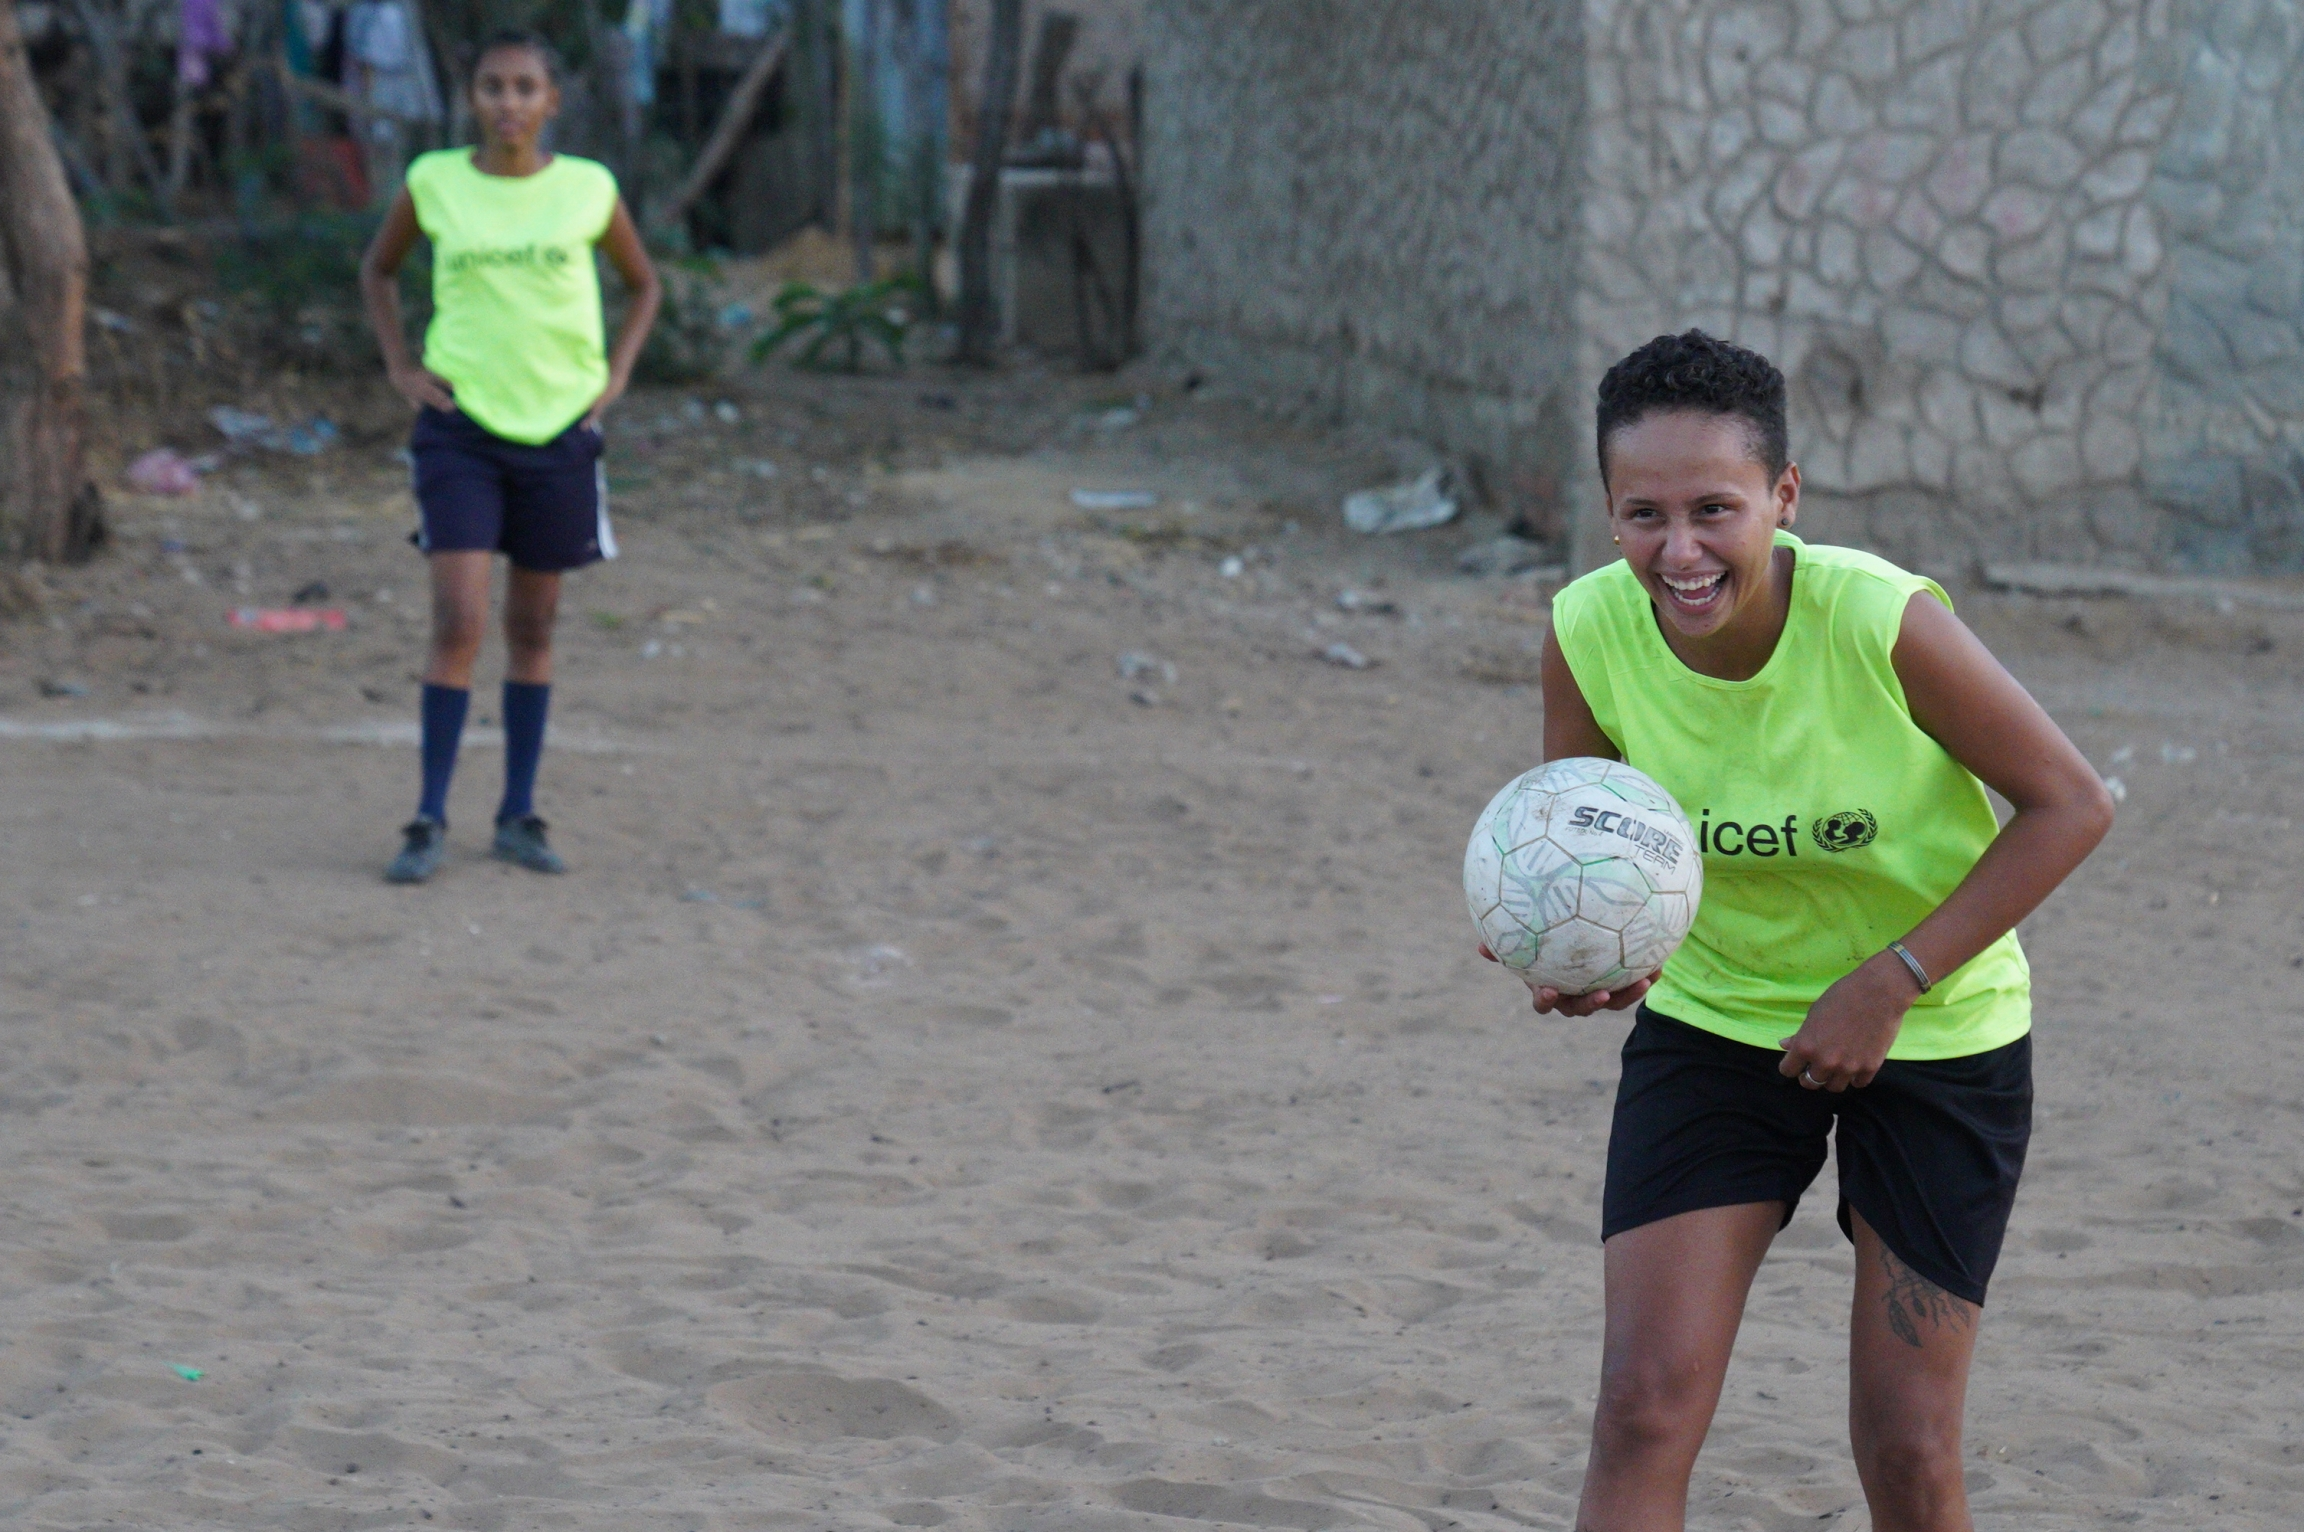 Maria Isabel Parra, 21, says that playing kick ball helps her to meet new people and deal with some of the stressthat comes with being an unemployed migrant.